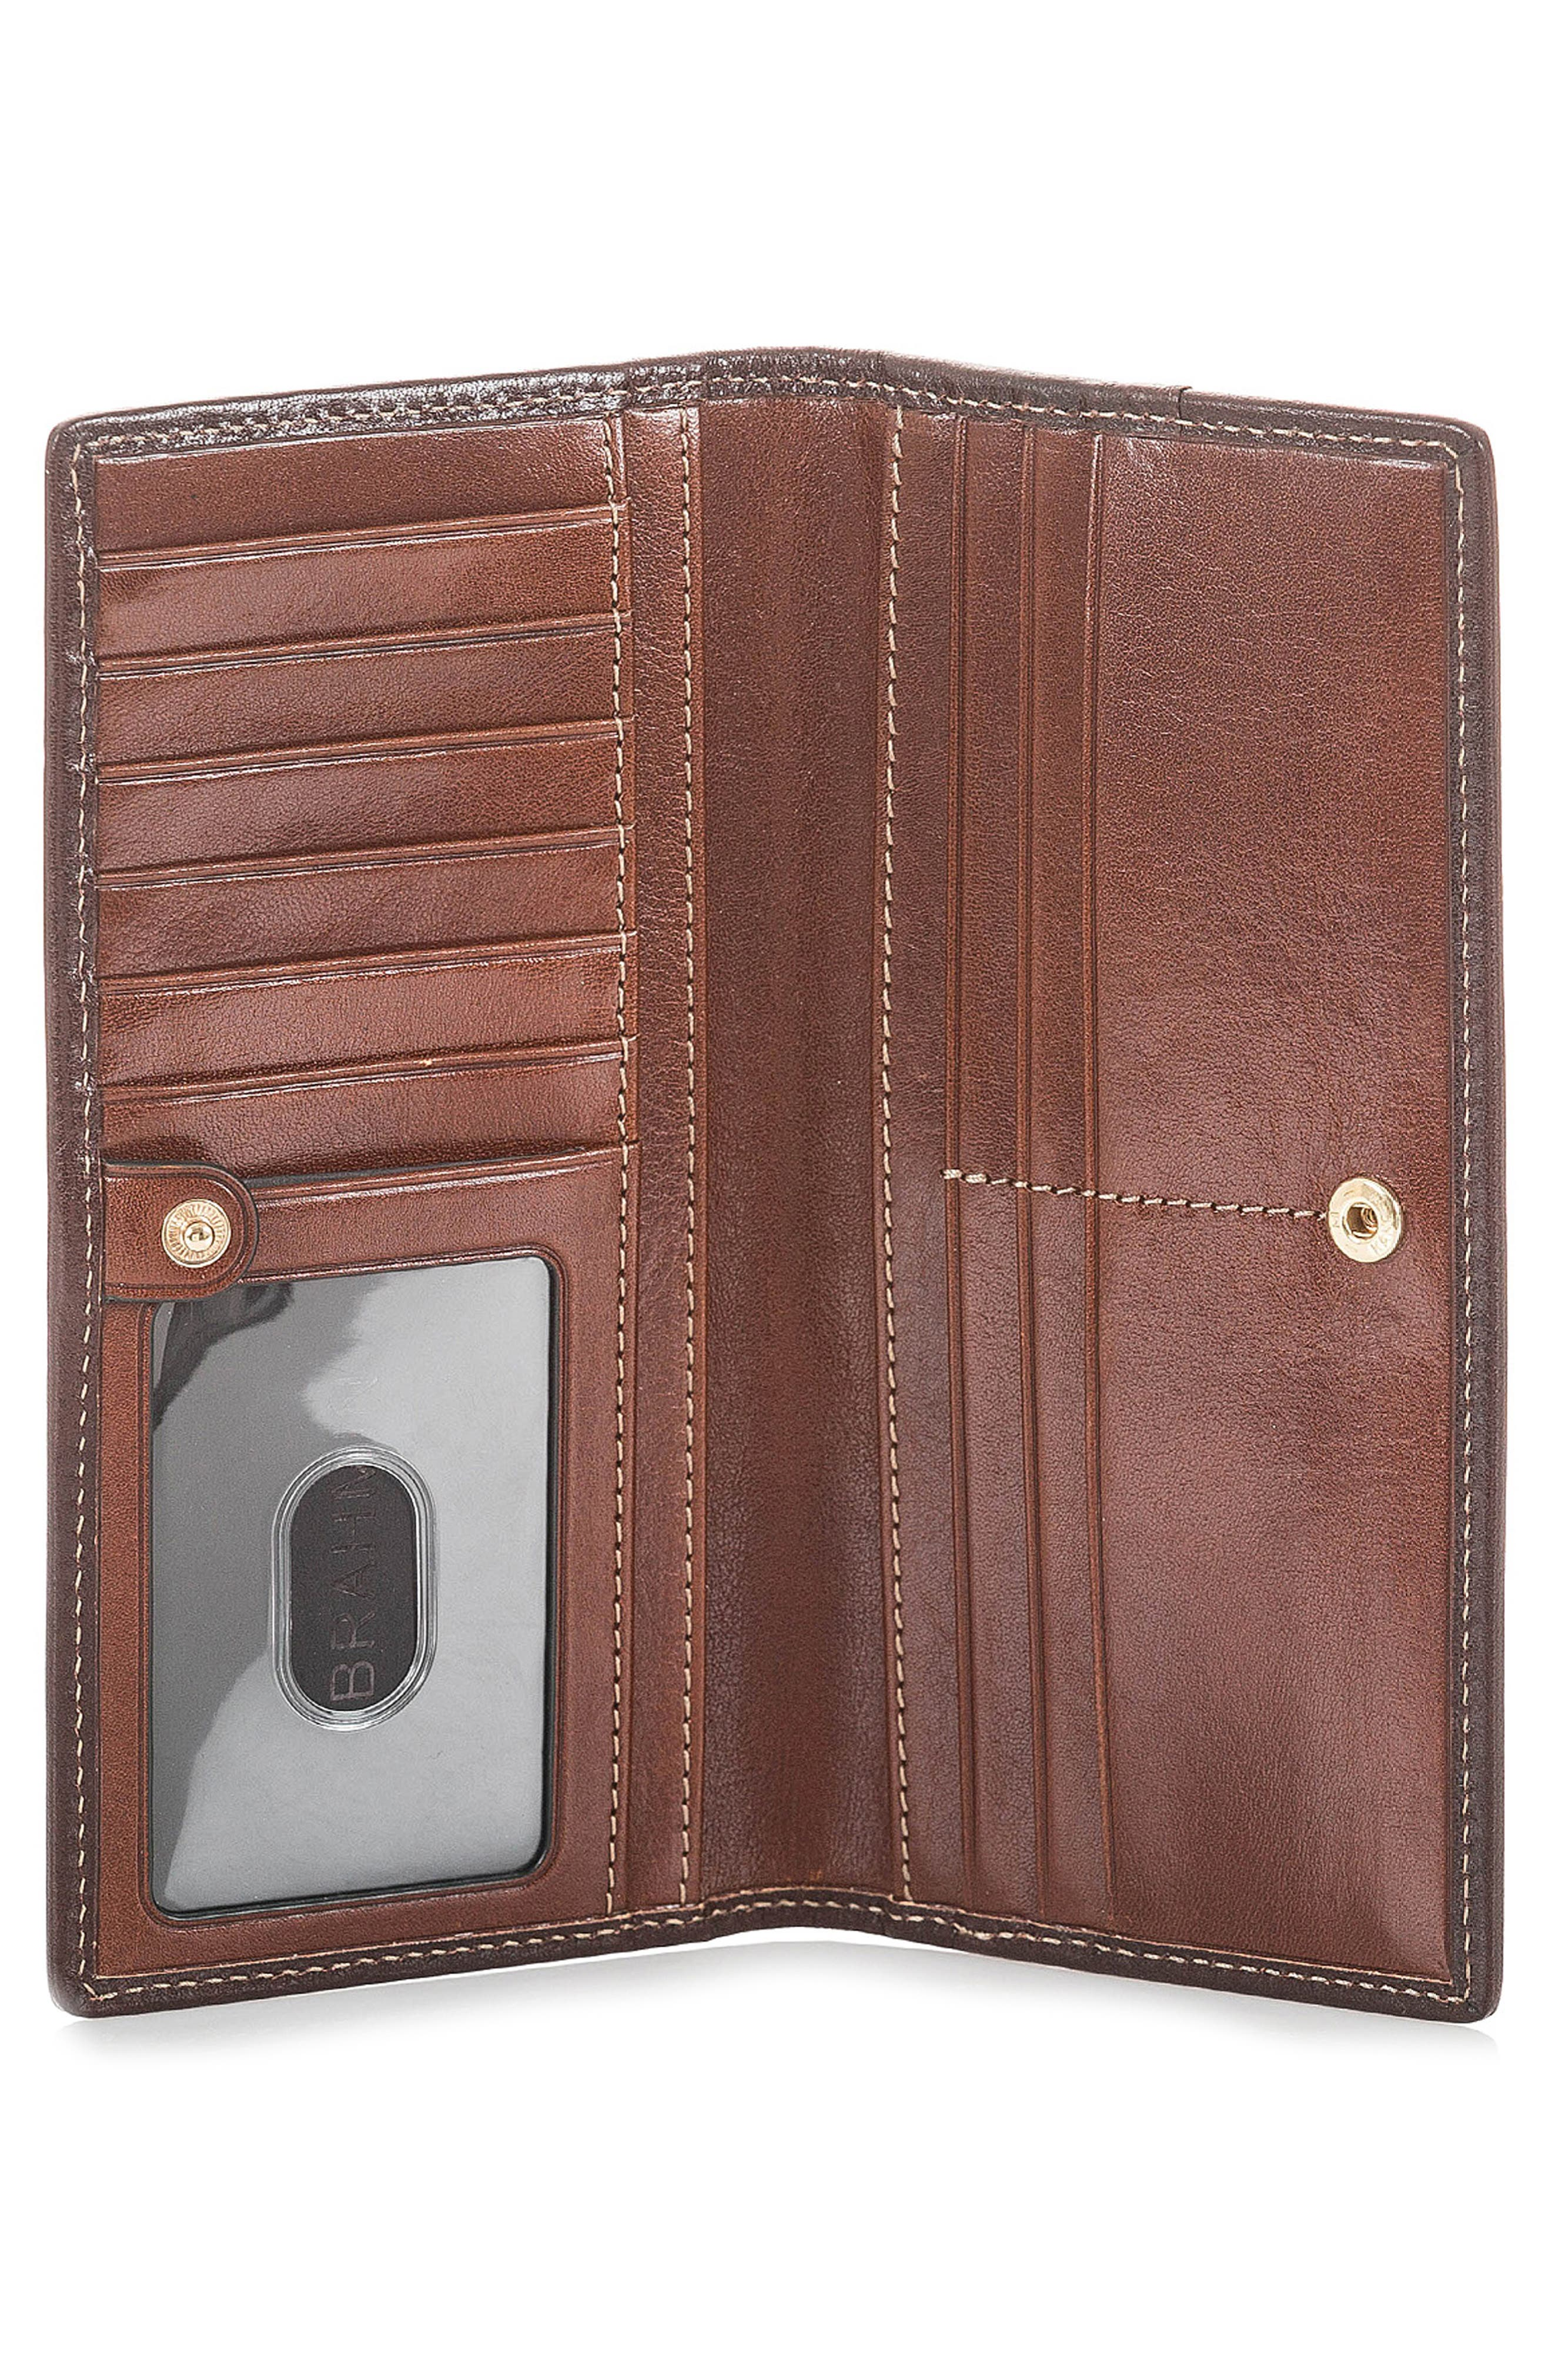 Ady Leather Wallet,                             Alternate thumbnail 2, color,                             200